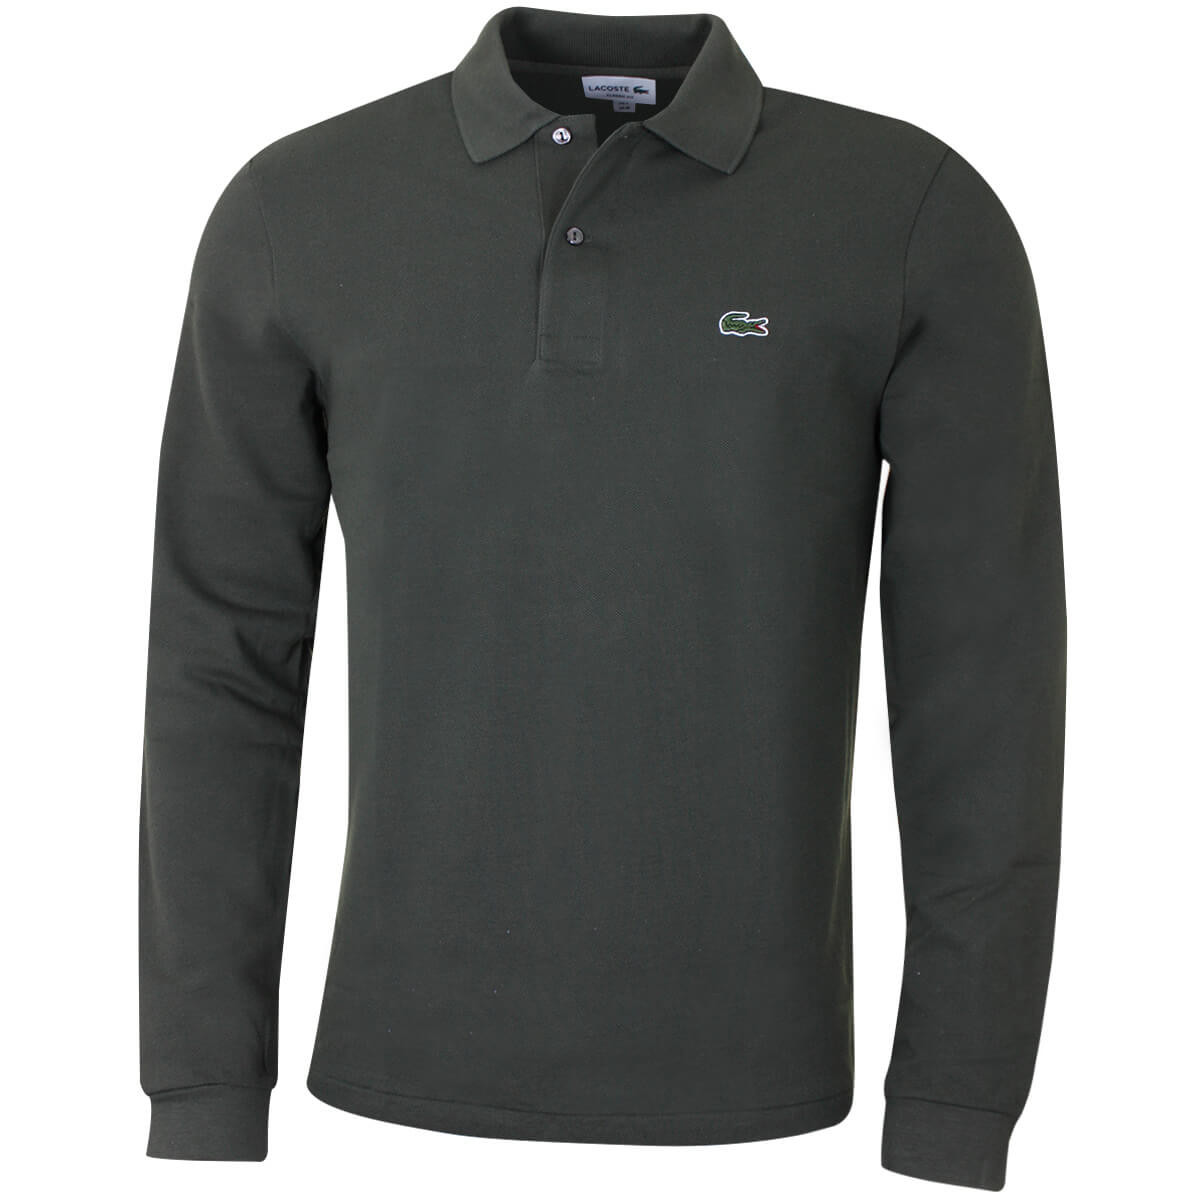 dfd965ba Lacoste Mens 2019 Classic Cotton Long Sleeve Polo Shirt